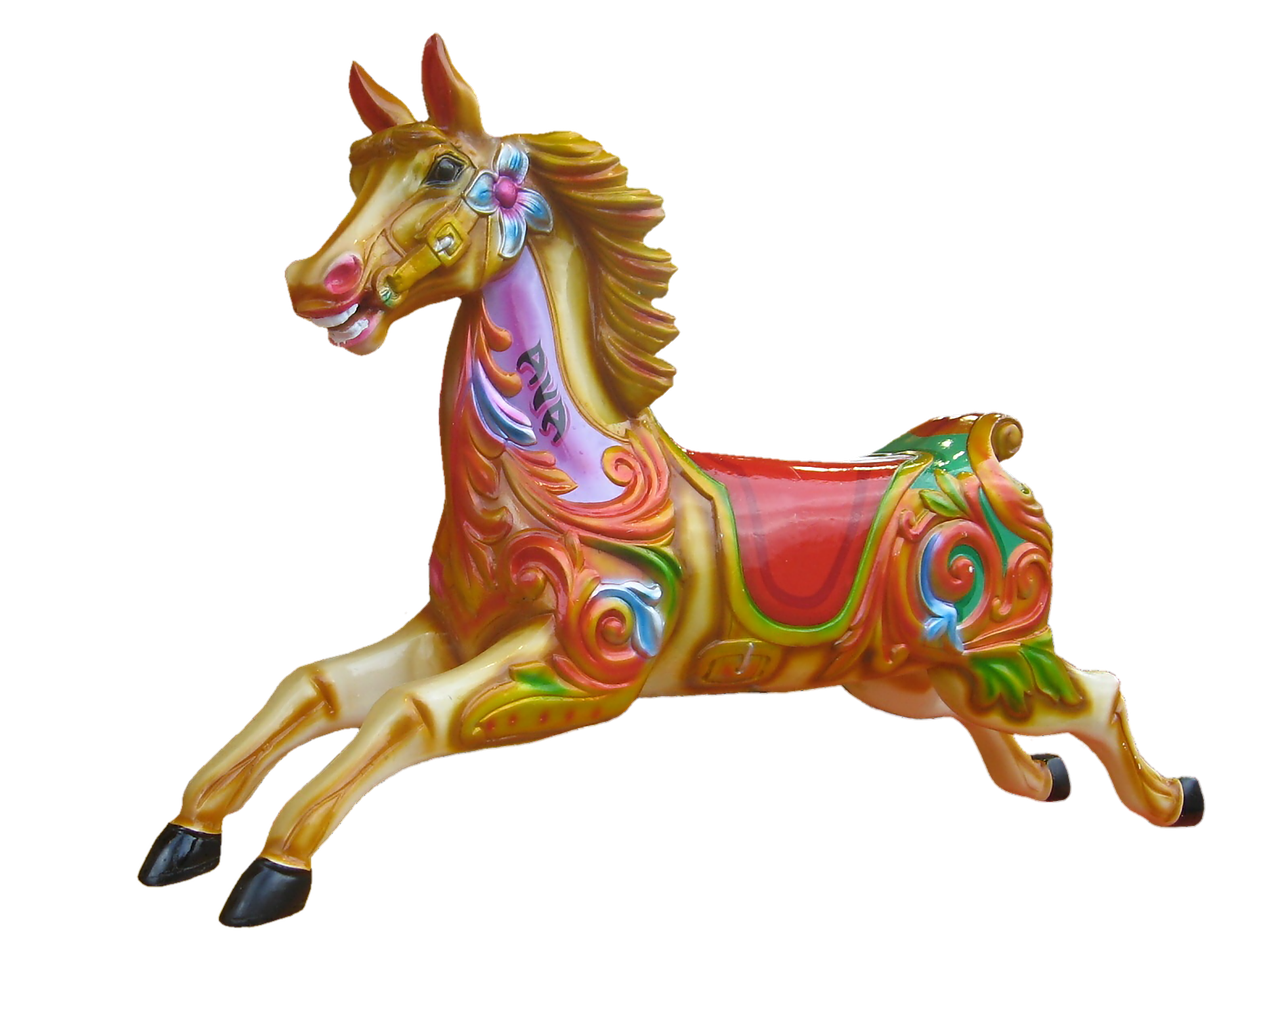 carousel horse,carousel,horse,ride,turn,year market,oktoberfest,folk festival,nostalgic,fun,children,colorful,isolated,cut out,free pictures, free photos, free images, royalty free, free illustrations